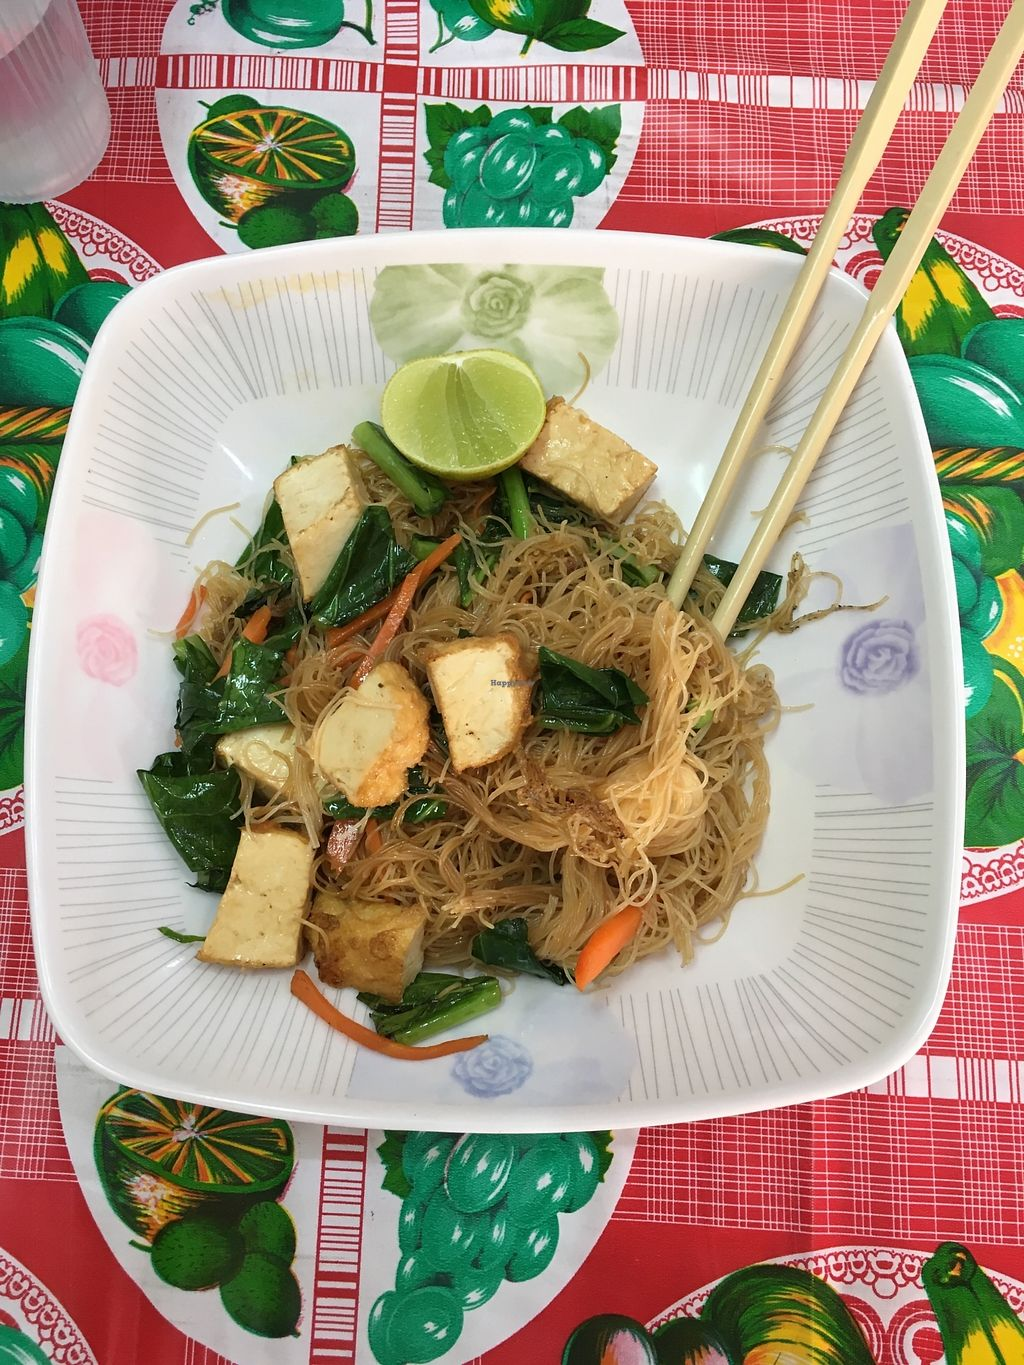 """Photo of Samrup Jay  by <a href=""""/members/profile/_zelisa"""">_zelisa</a> <br/>Noodles in soy sauce  <br/> November 26, 2017  - <a href='/contact/abuse/image/21054/329398'>Report</a>"""